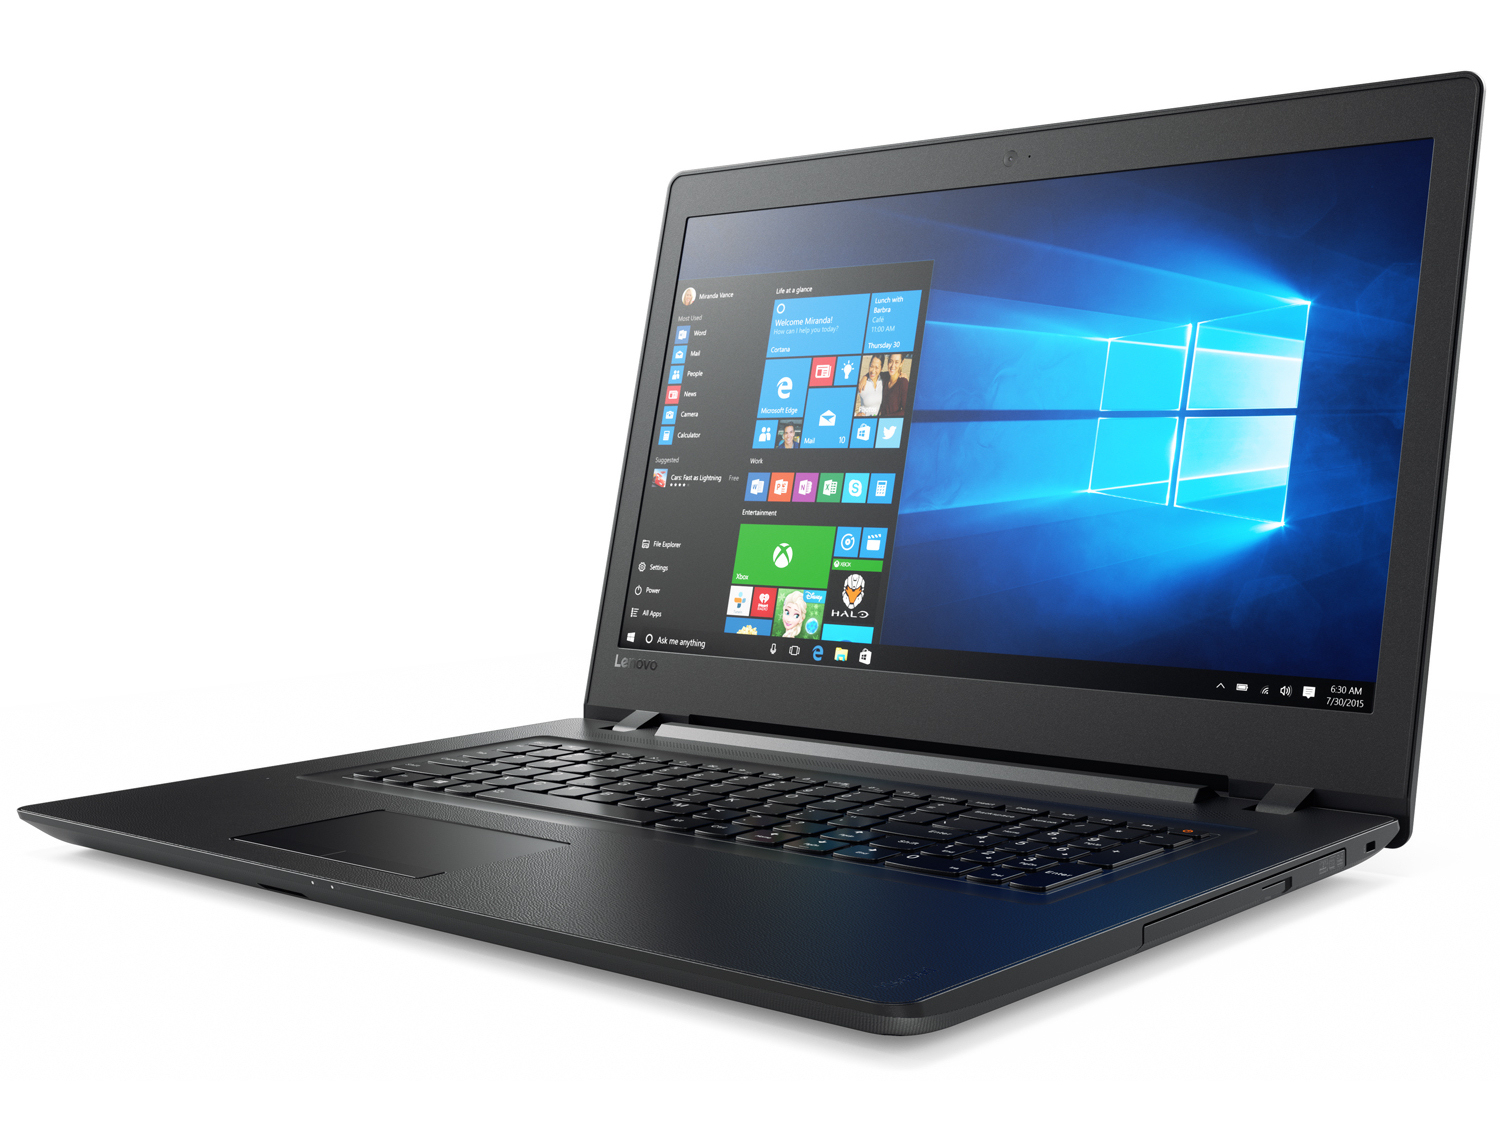 fa6ad63334fa8c In review  Lenovo Ideapad 110-17IKB 80VK0001GE. Test model provided by  Notebooksbilliger.de